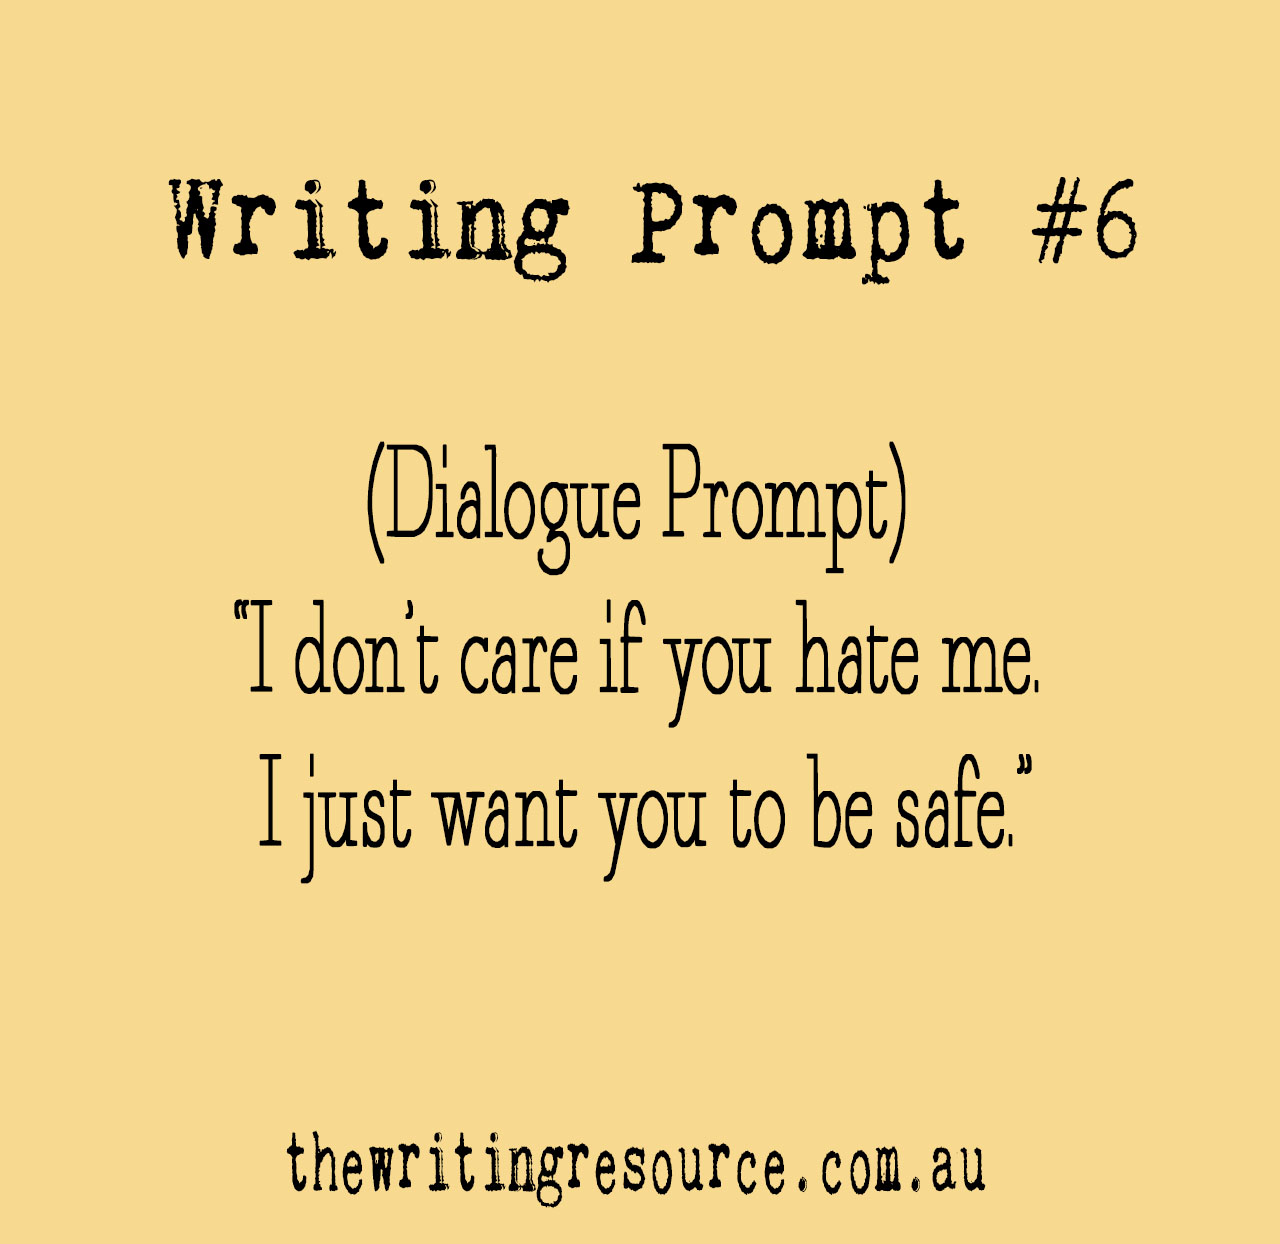 Writing Prompt #6